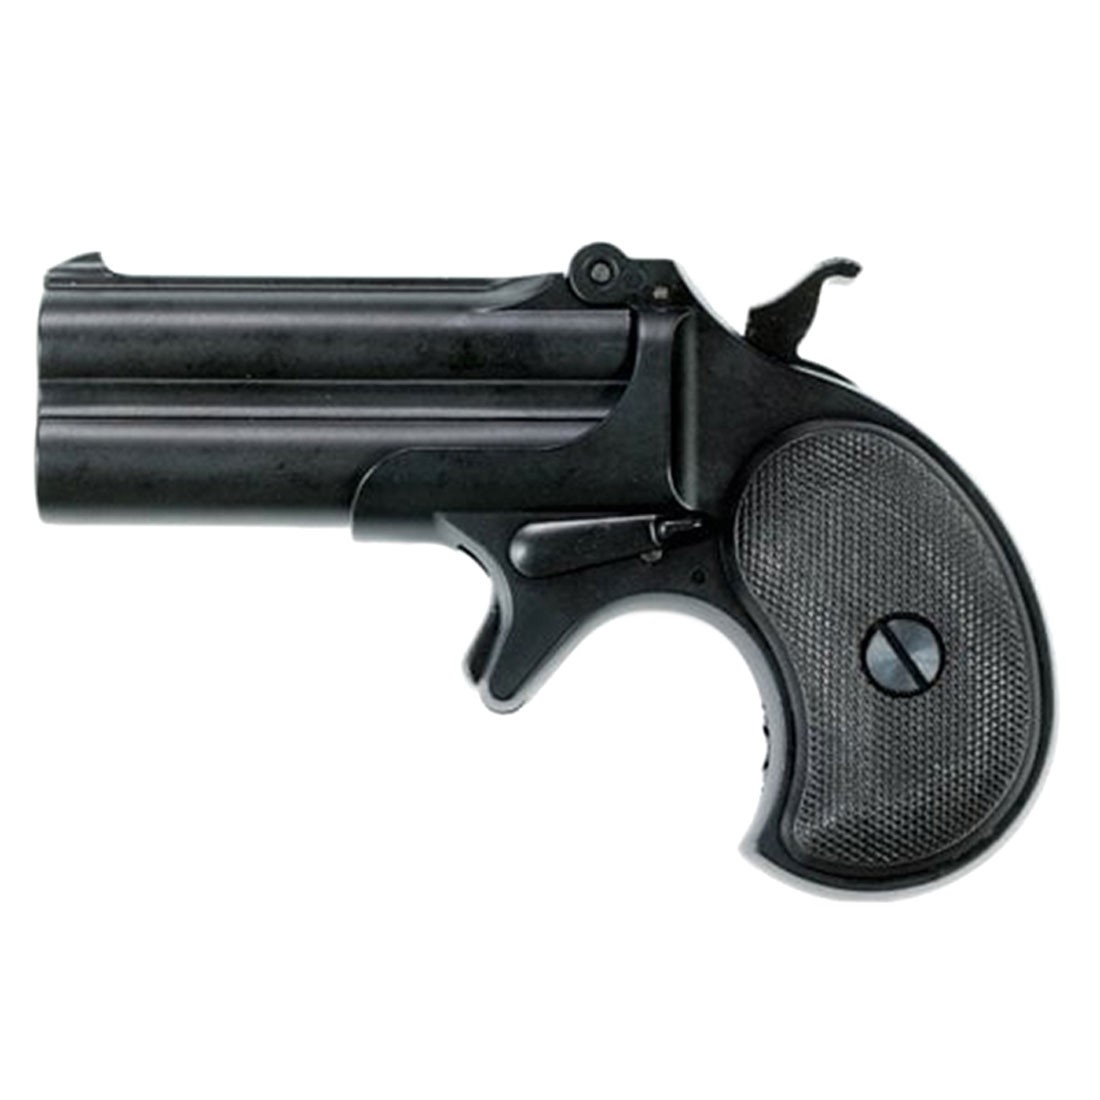 Maxtact Derringer Full Metal Gas Airsoft Double Barrel Pistol - Black